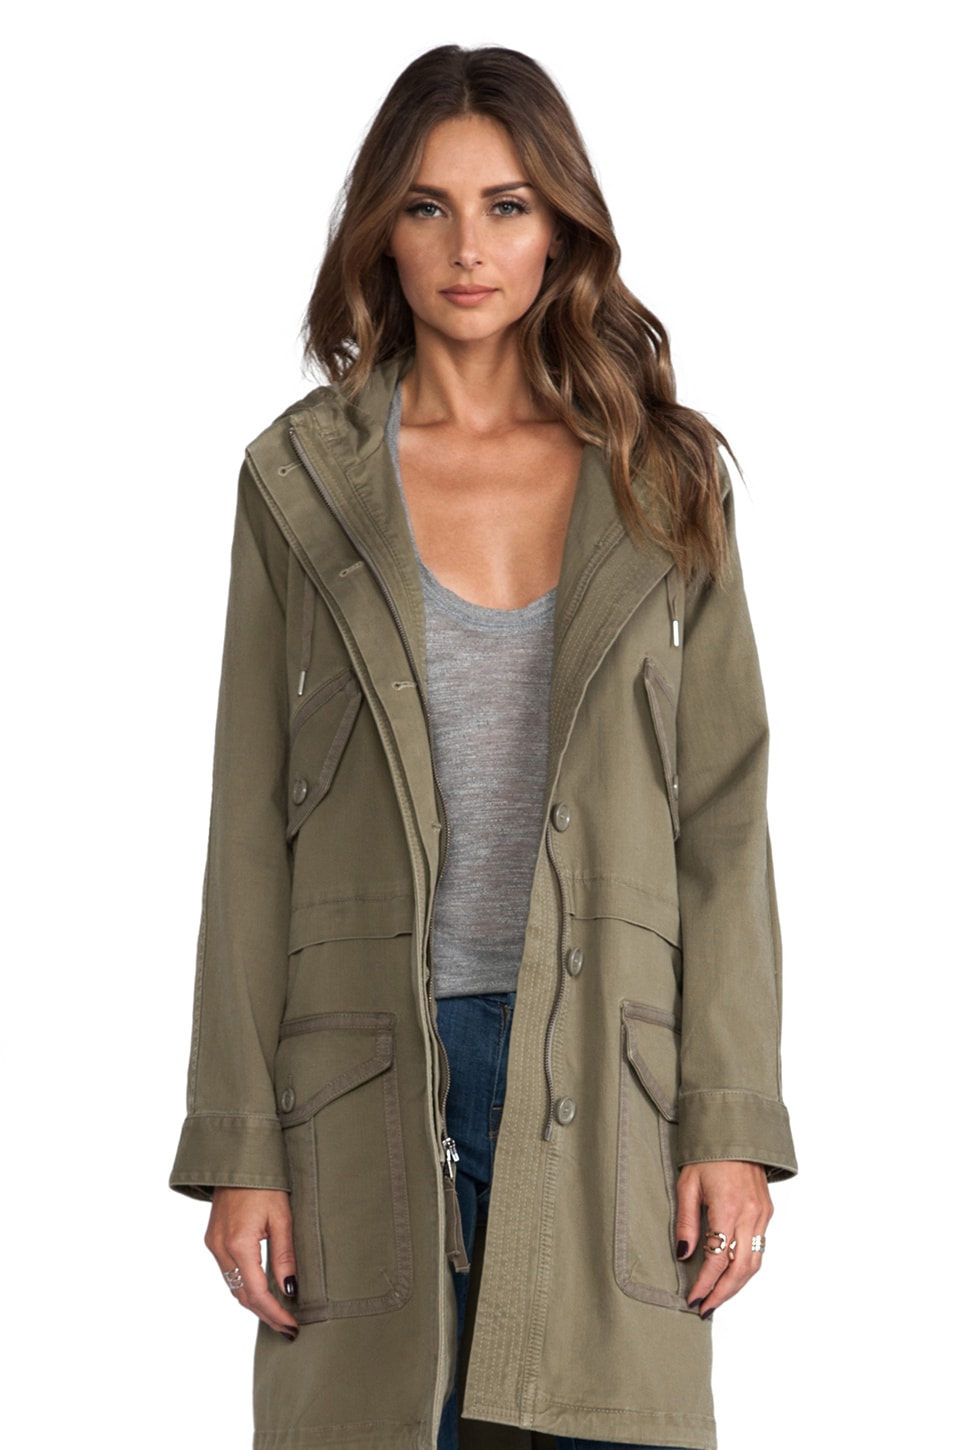 Marc by Marc Jacobs Zeta Twill Trench in Dusty Green